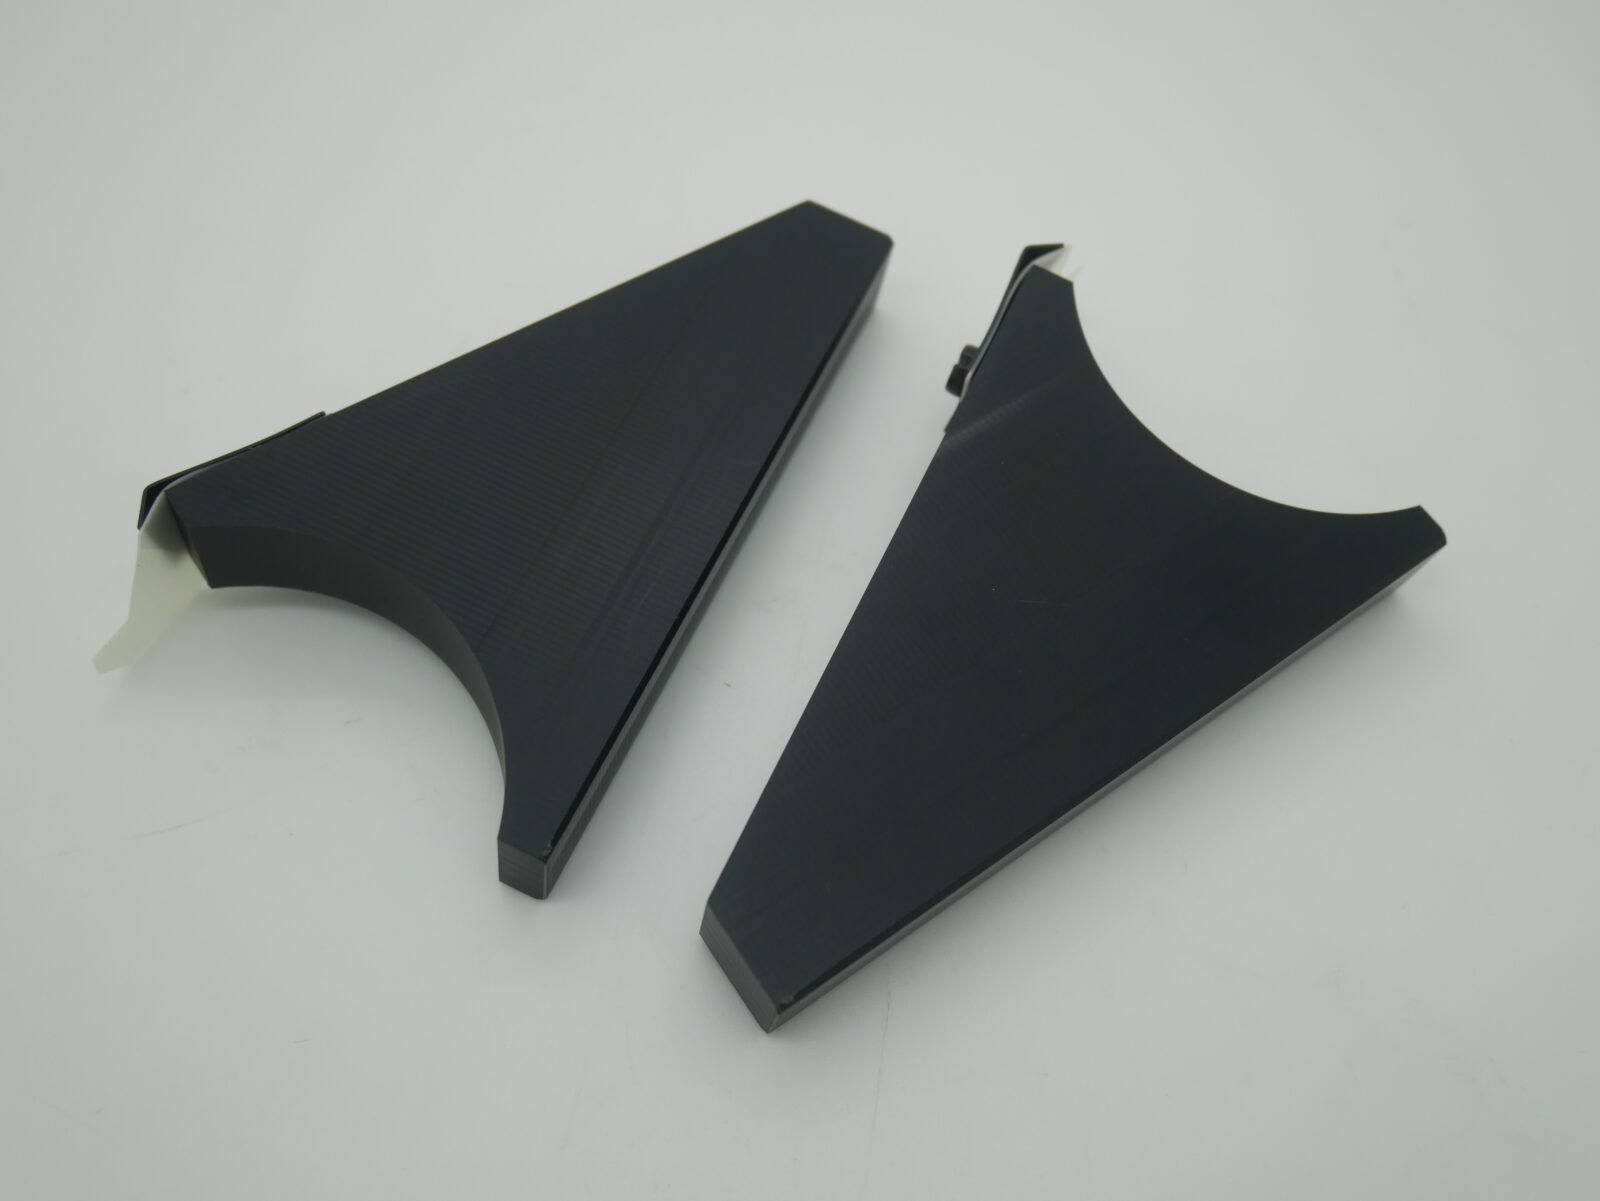 GTO52 No CPC Ink Duct Dividers (Pair) HDM: MV.037.346